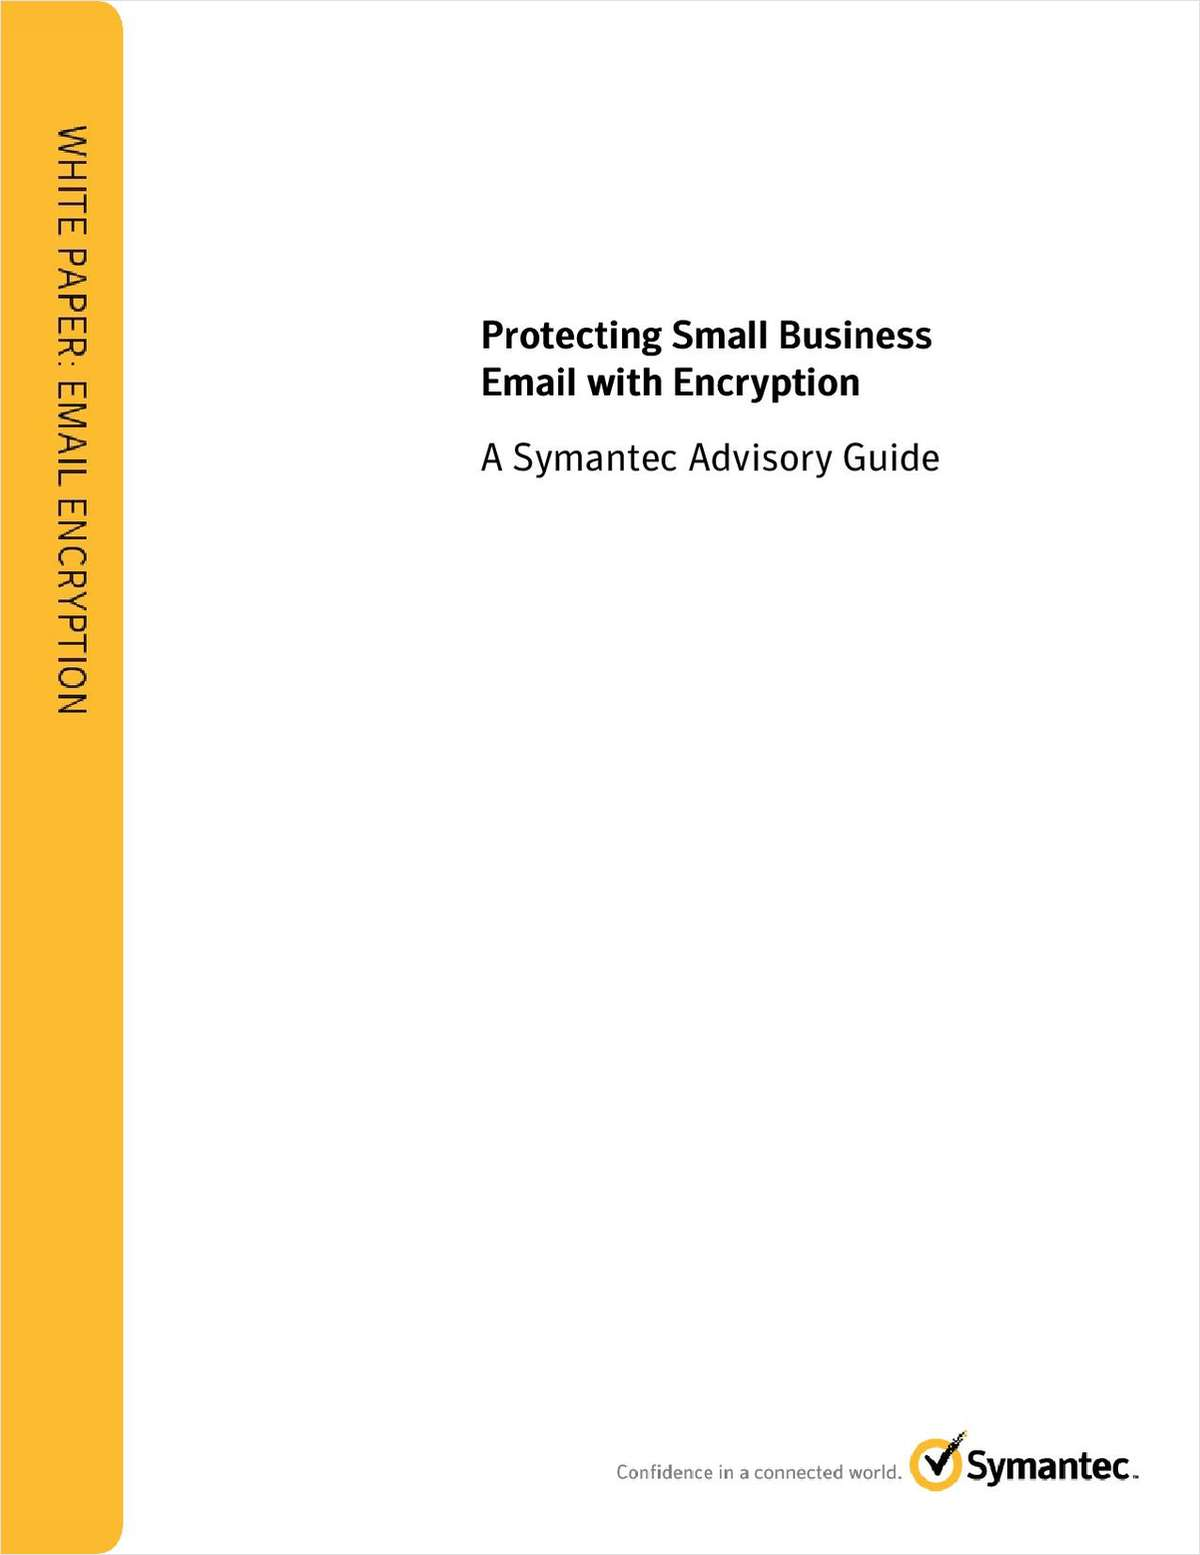 Protecting Small Business Email with Encryption